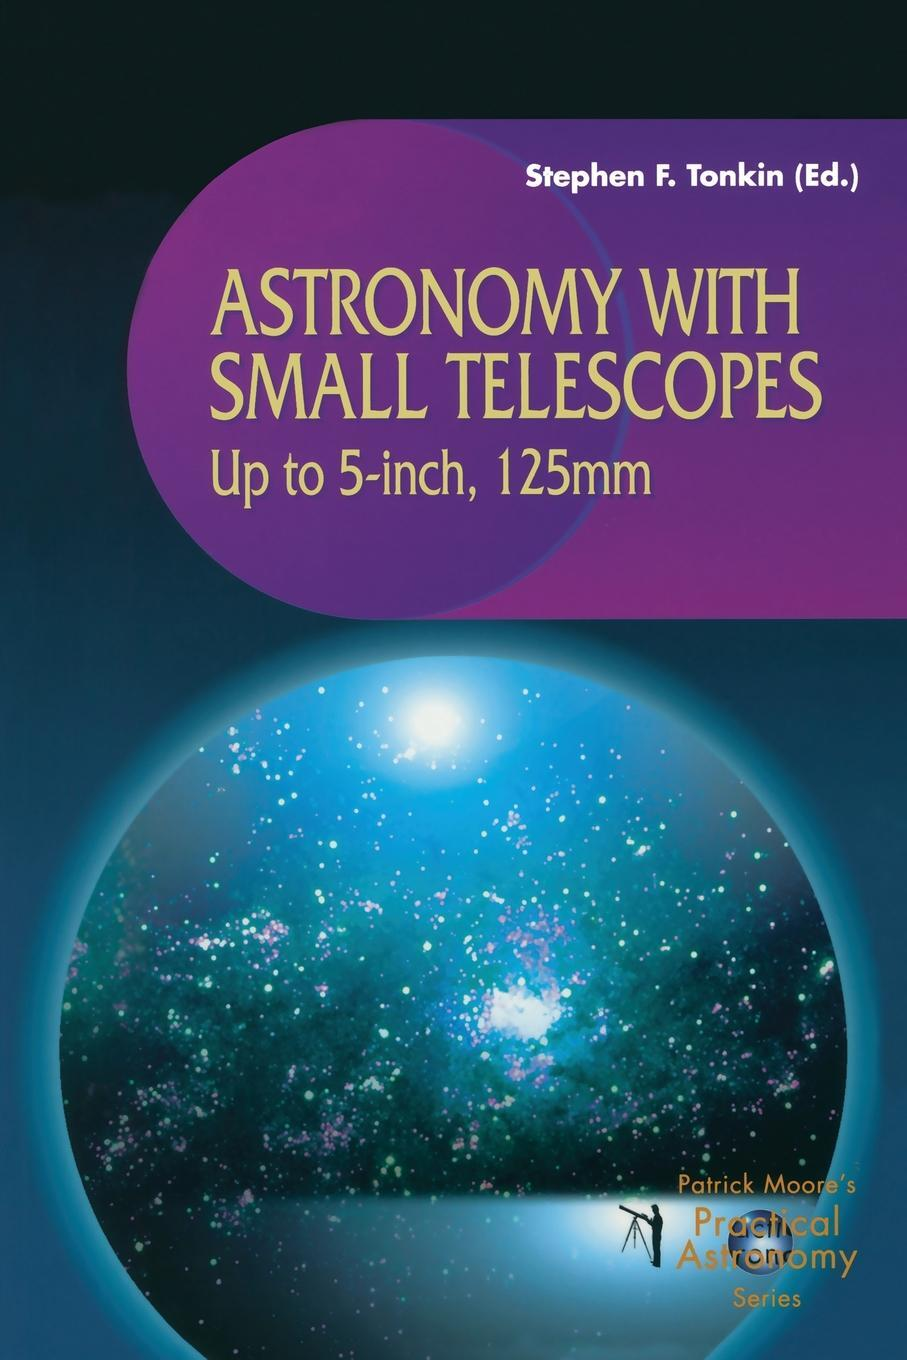 Astronomy with Small Telescopes. Up to 5-inch, 125mm.